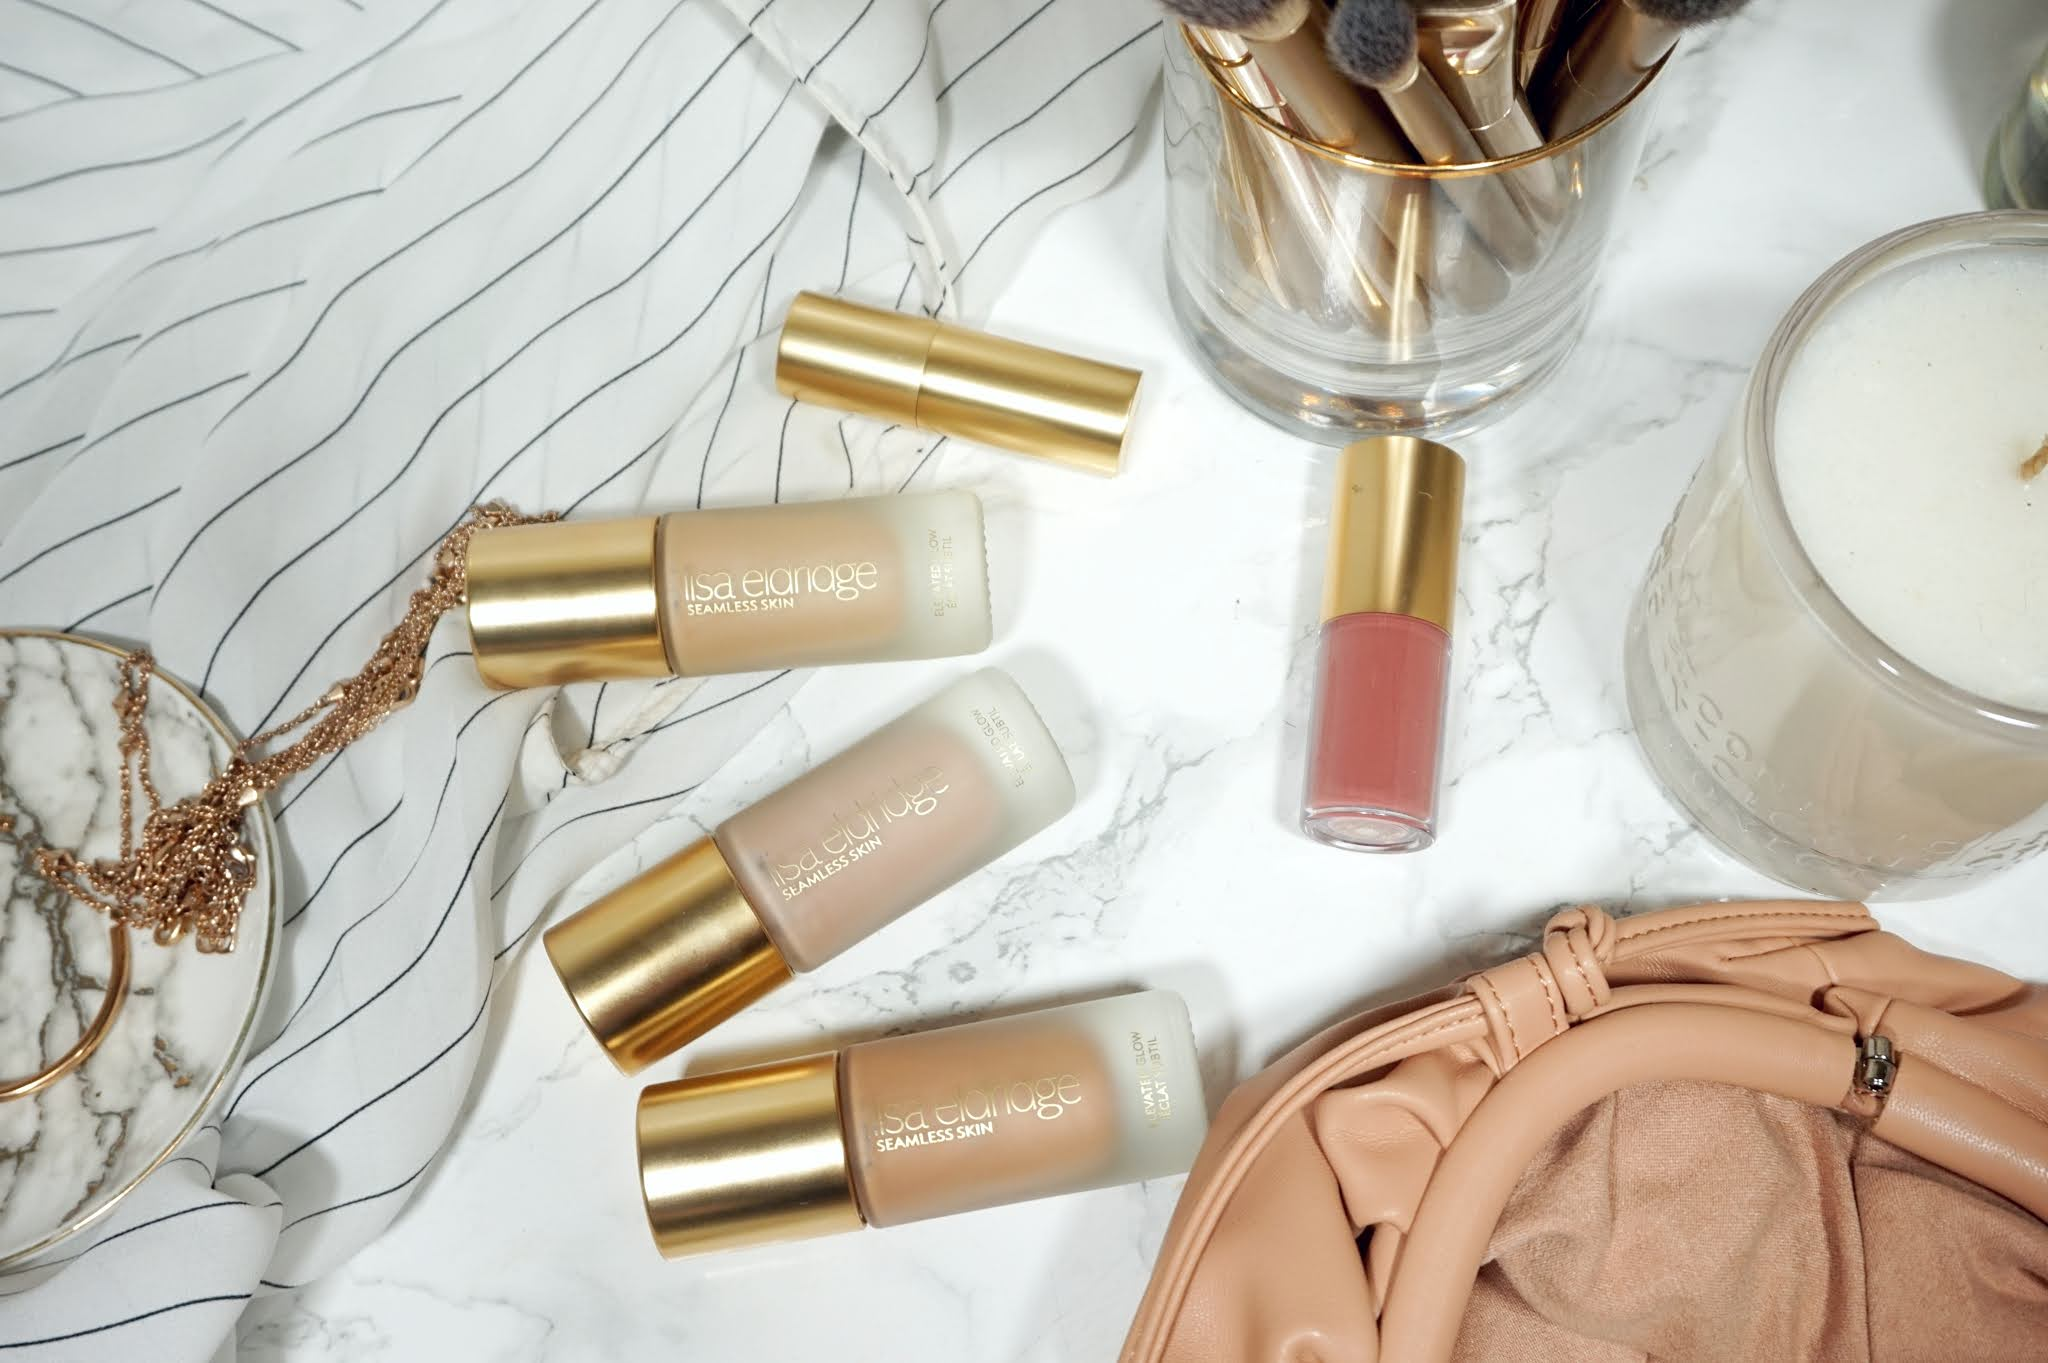 Lisa Eldridge Elevated Glow Highlighter Review and Swatches